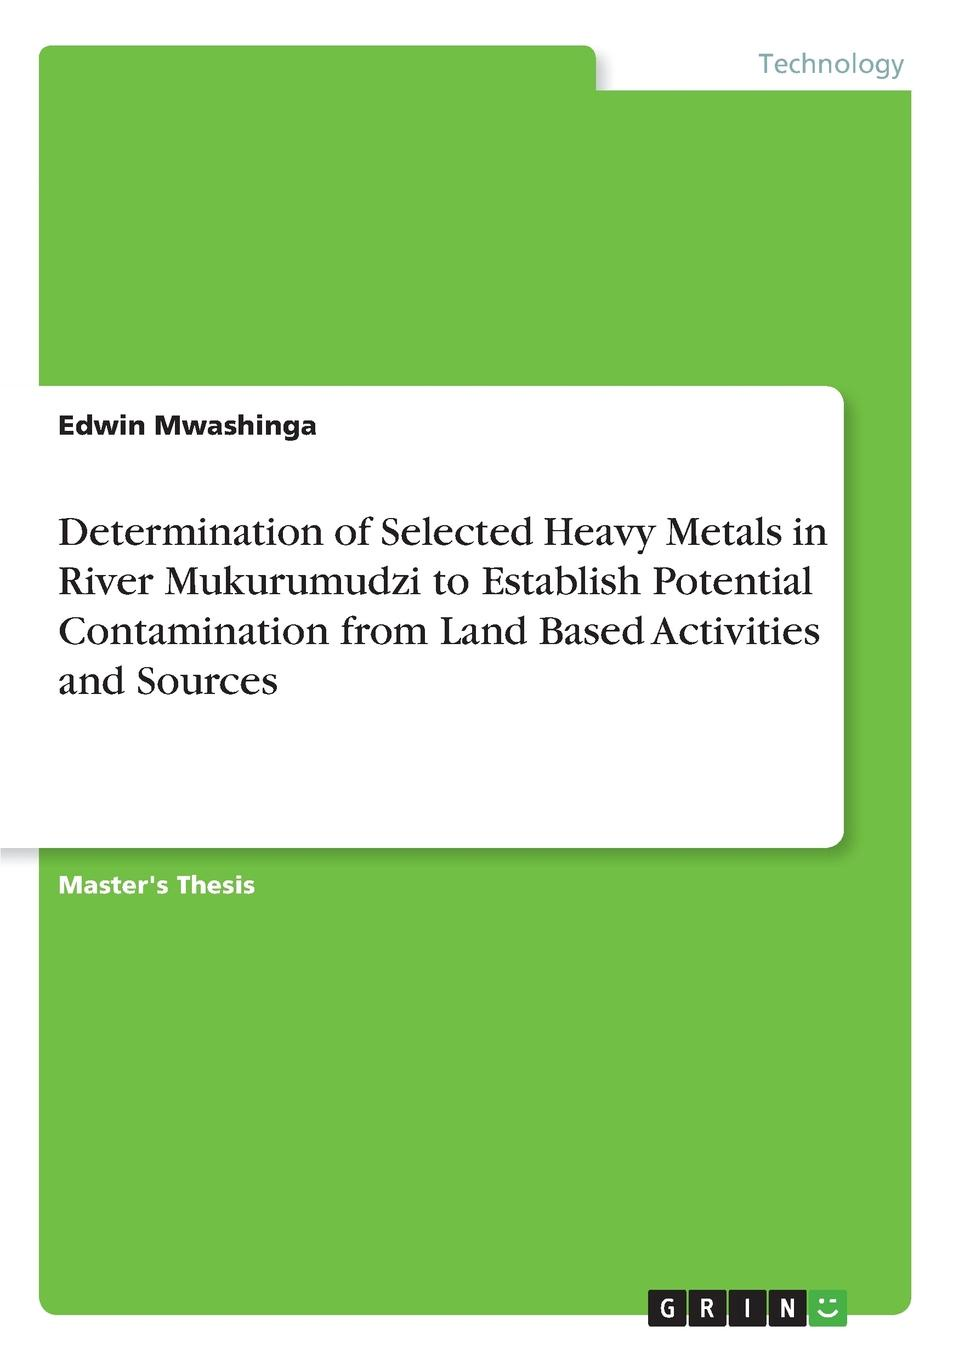 Edwin Mwashinga Determination of Selected Heavy Metals in River Mukurumudzi to Establish Potential Contamination from Land Based Activities and Sources bioavailability and solubility equilibria of heavy metals in soils